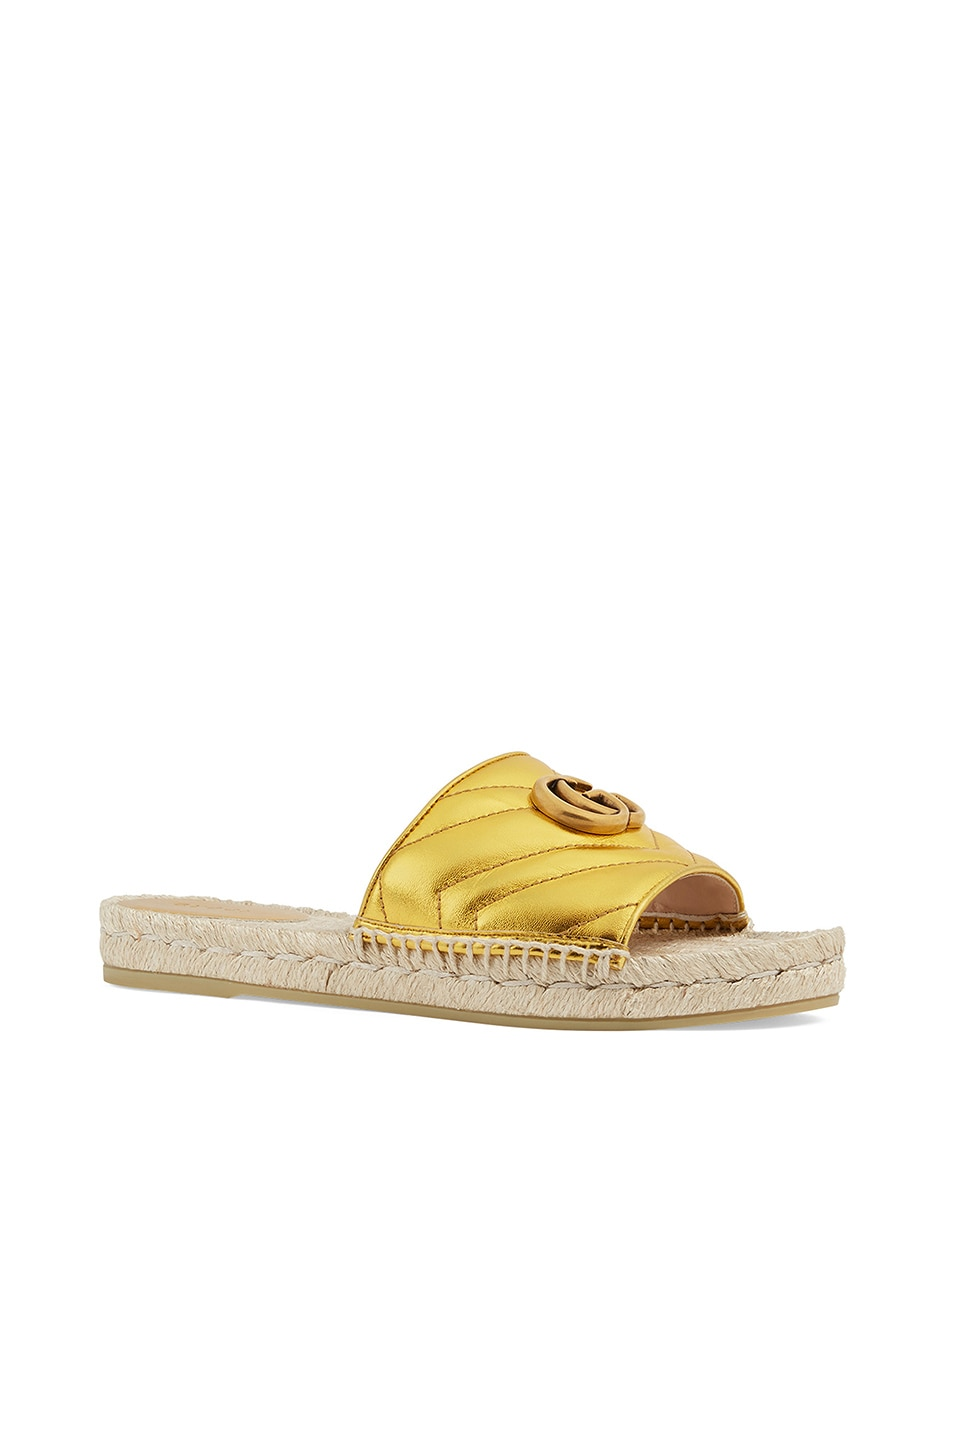 Image 2 of Gucci Pilar Sandals in Gold